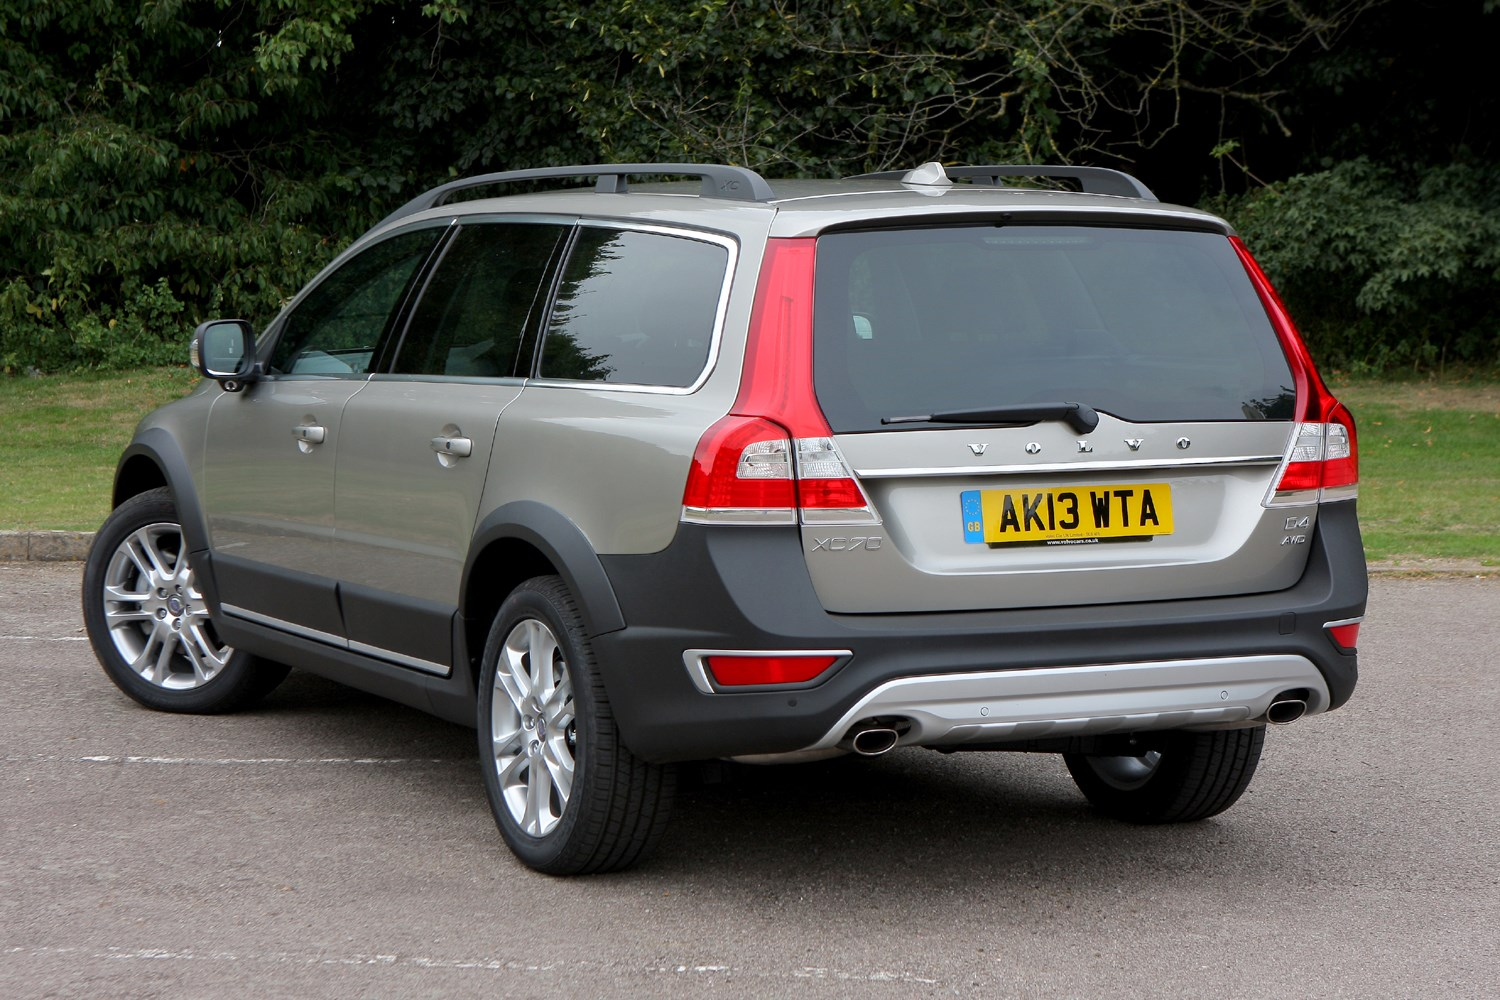 Volvo XC70 Estate (2007 - 2016) Driving & Performance | Parkers